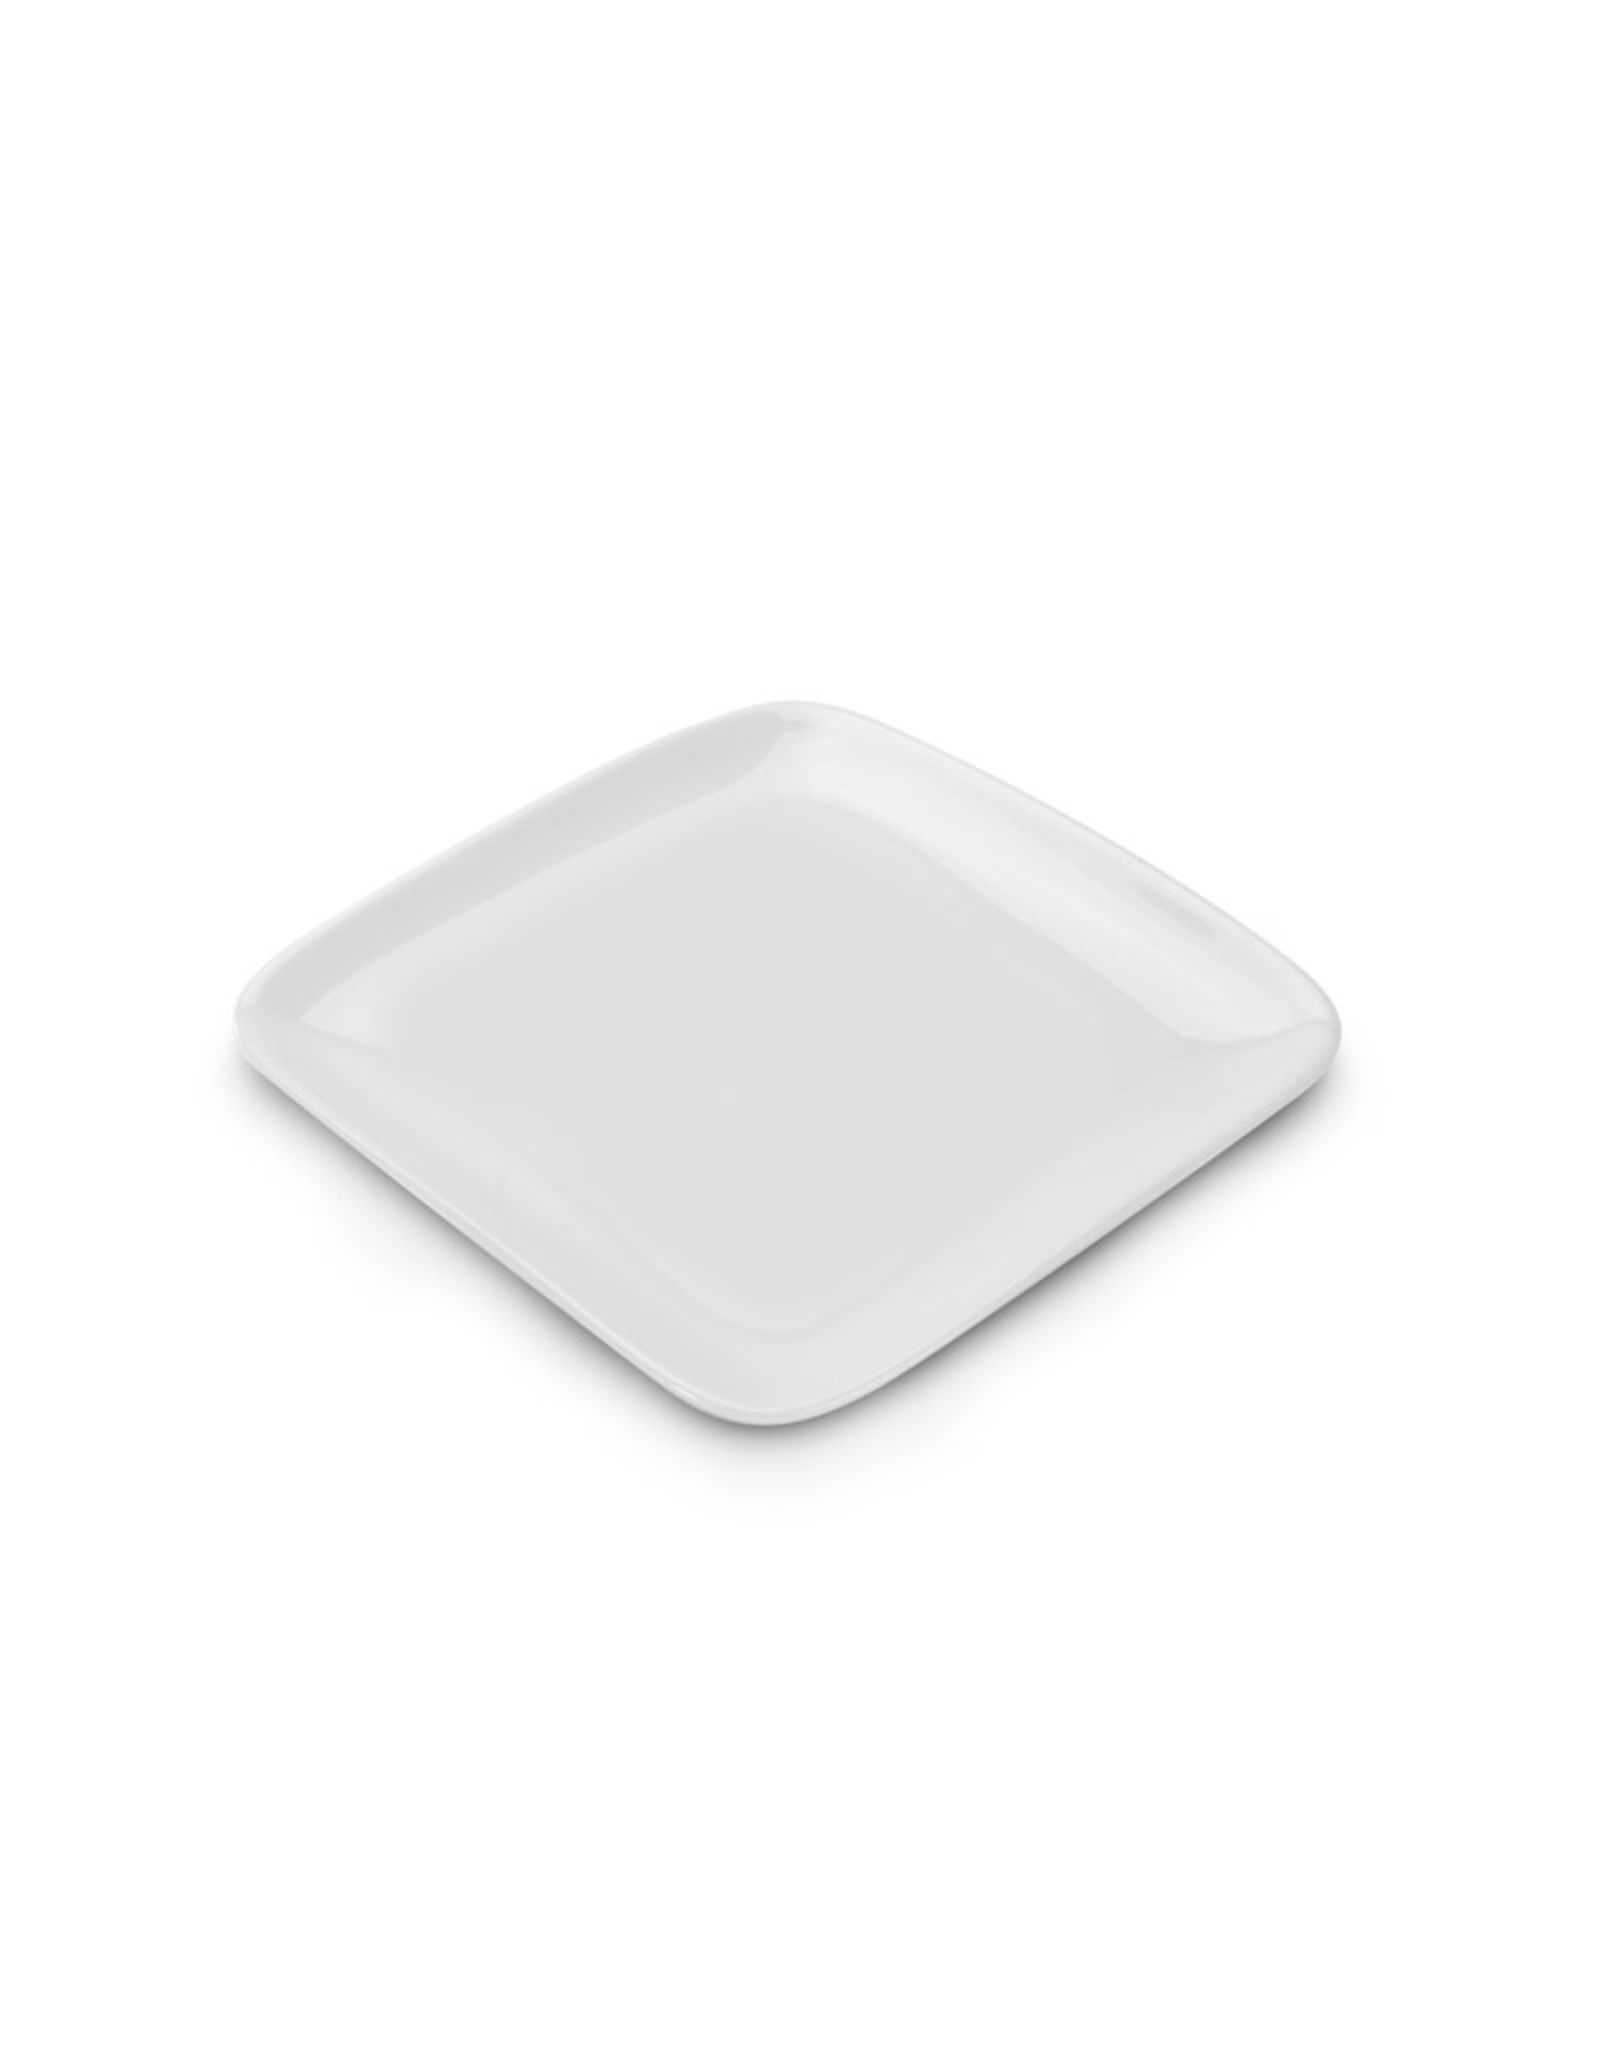 Bia Bia Asian Collection Square Plate - White